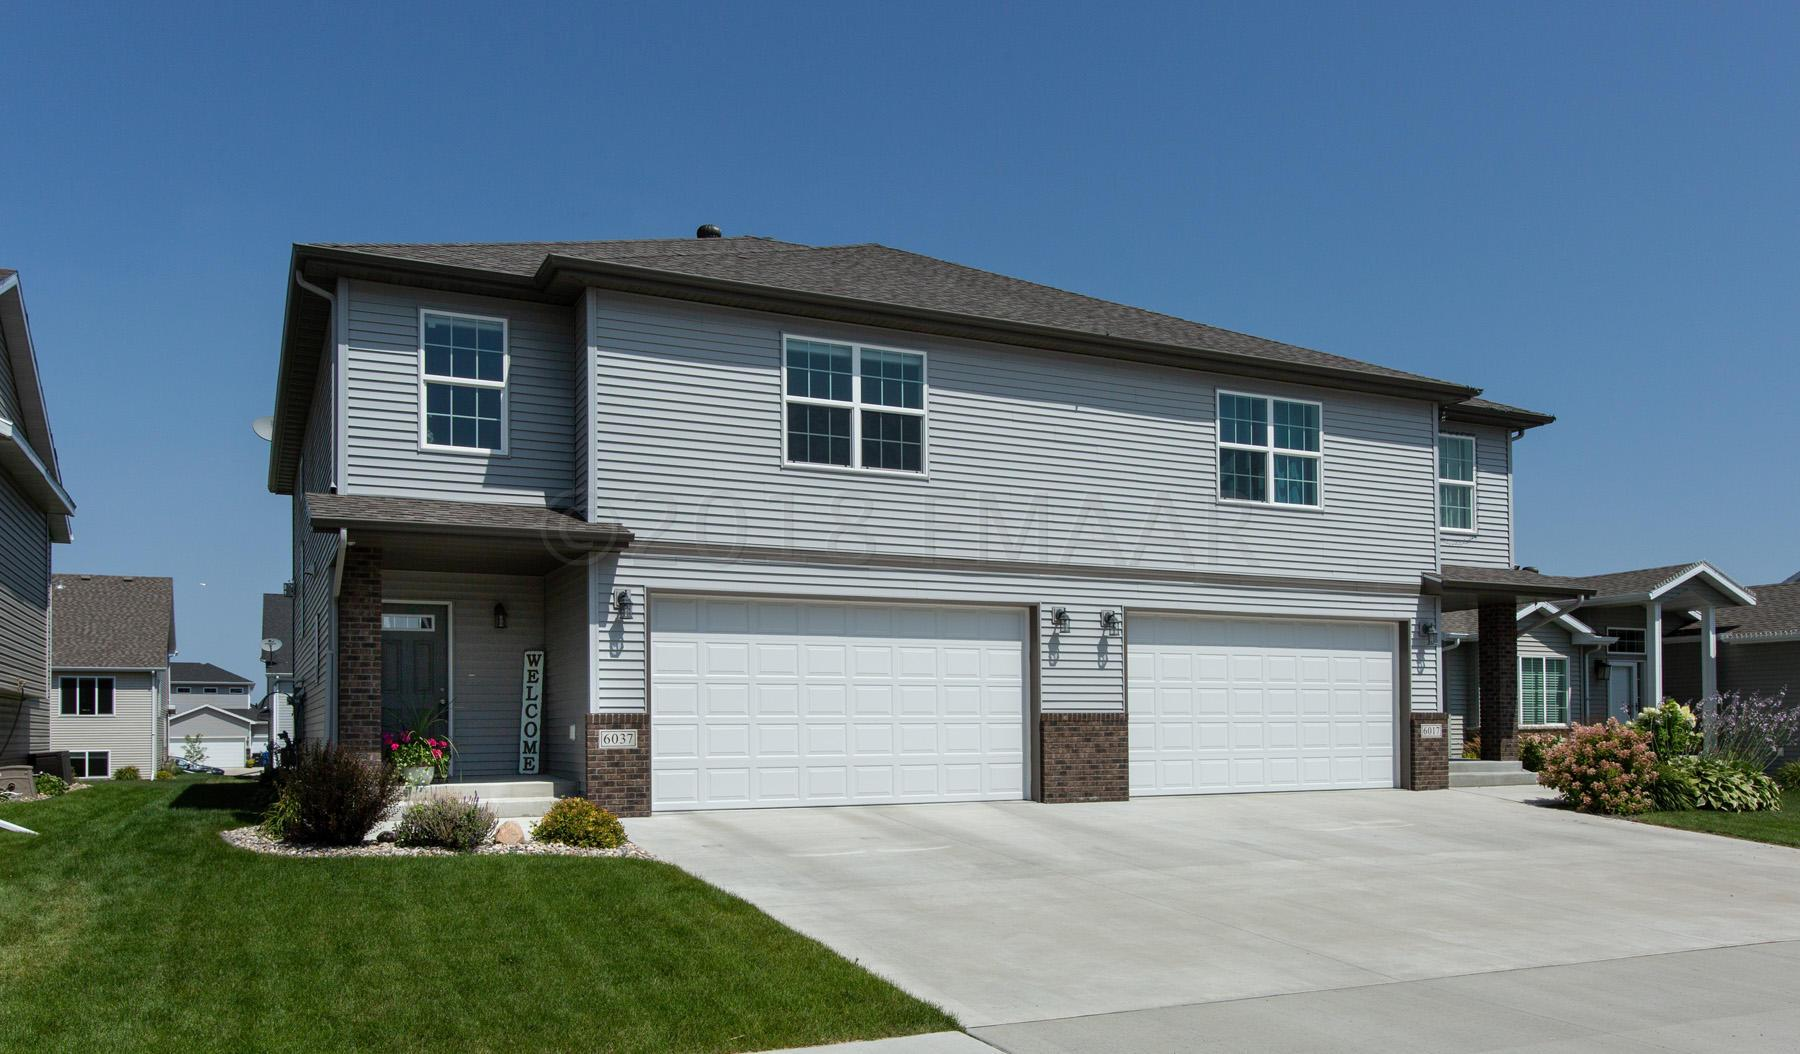 6037 57 Avenue S, Fargo, ND 58104